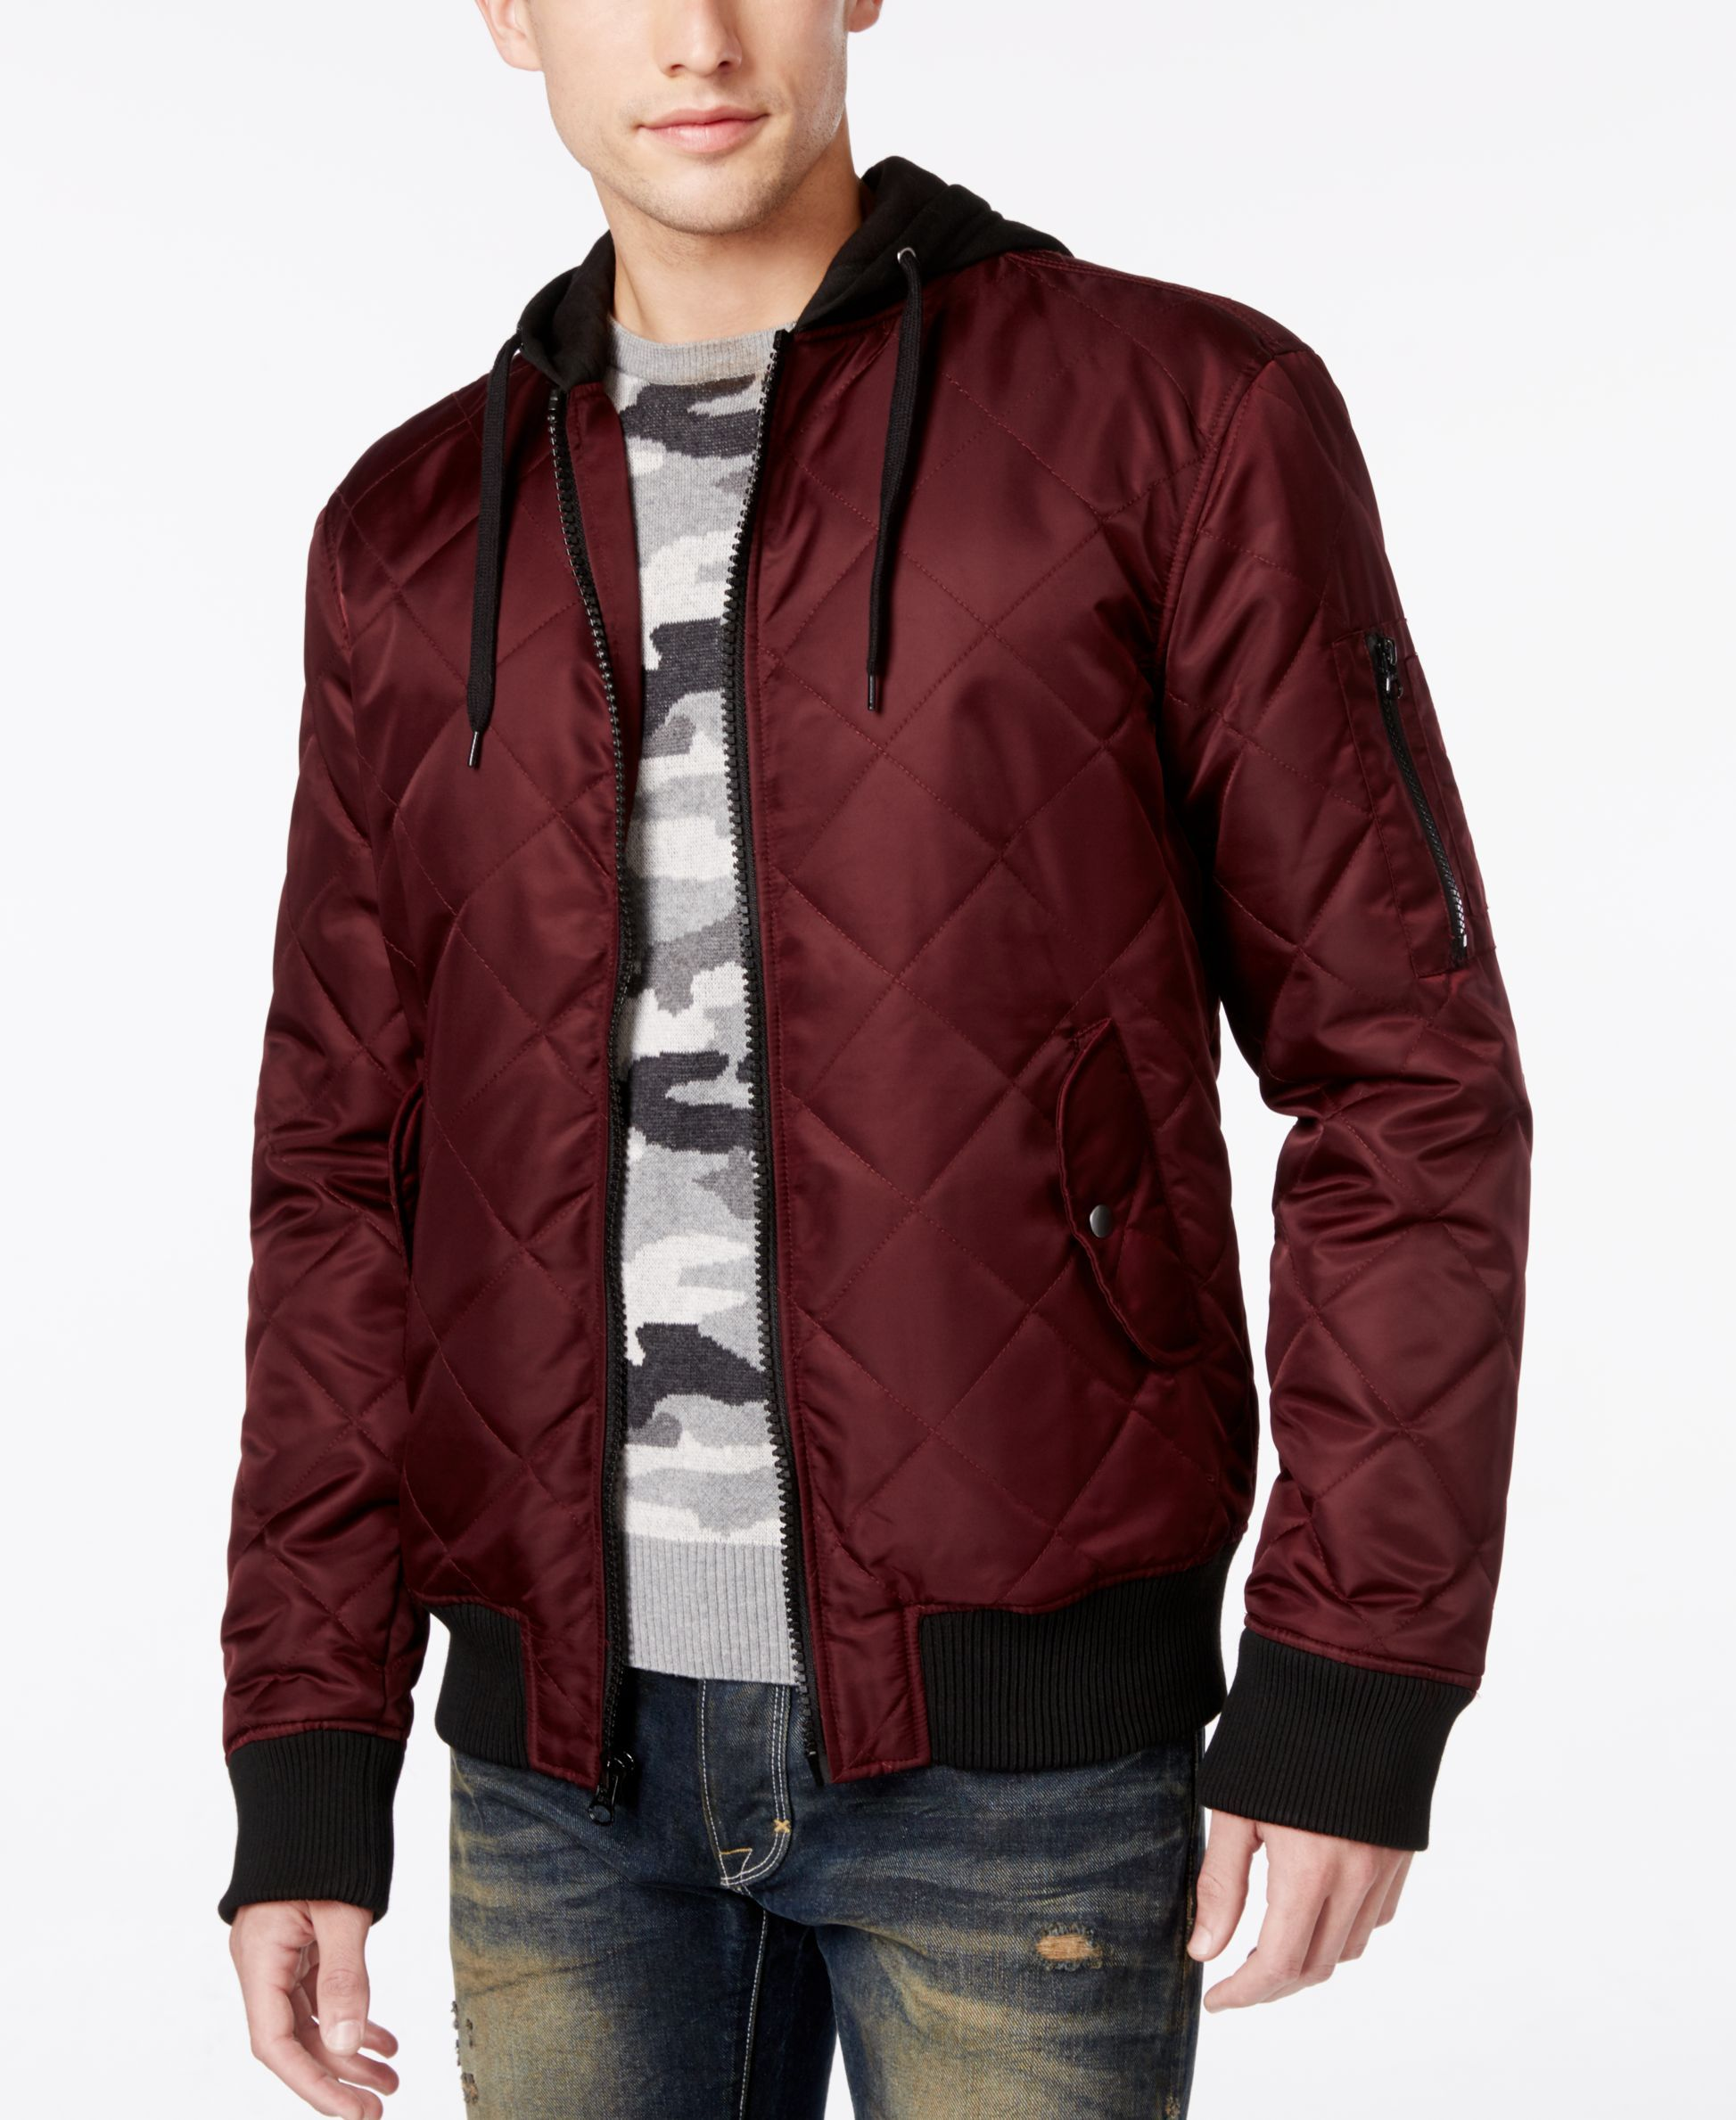 American Rag Men S Quilted Hooded Bomber Jacket Only At Macy S Hooded Bomber Jacket Mens Outdoor Jackets Bomber Jacket